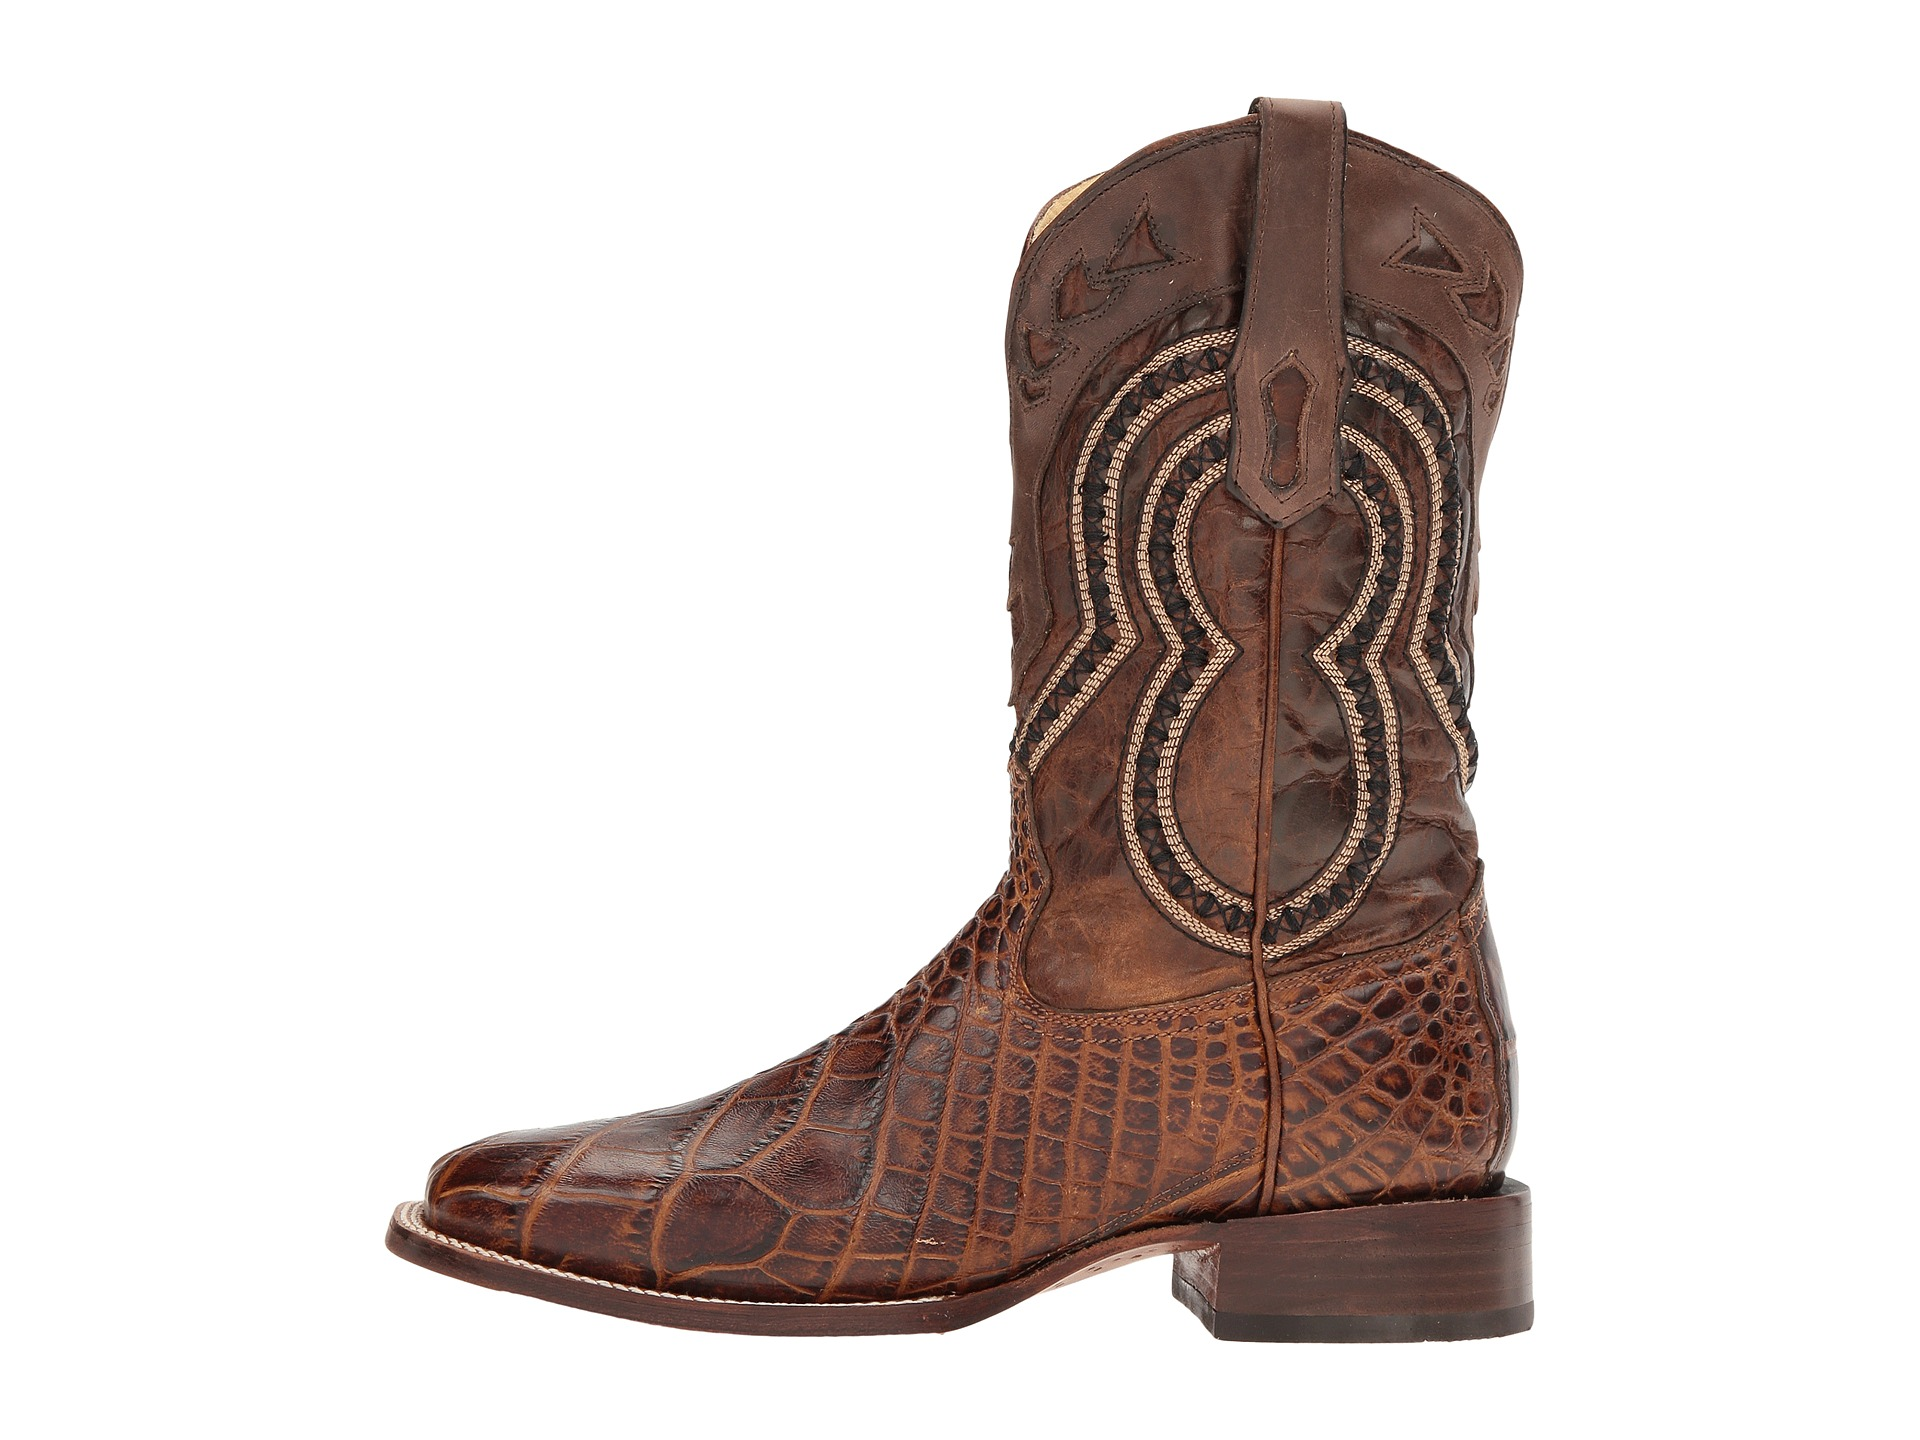 corral boots a3083 brown zappos free shipping both ways